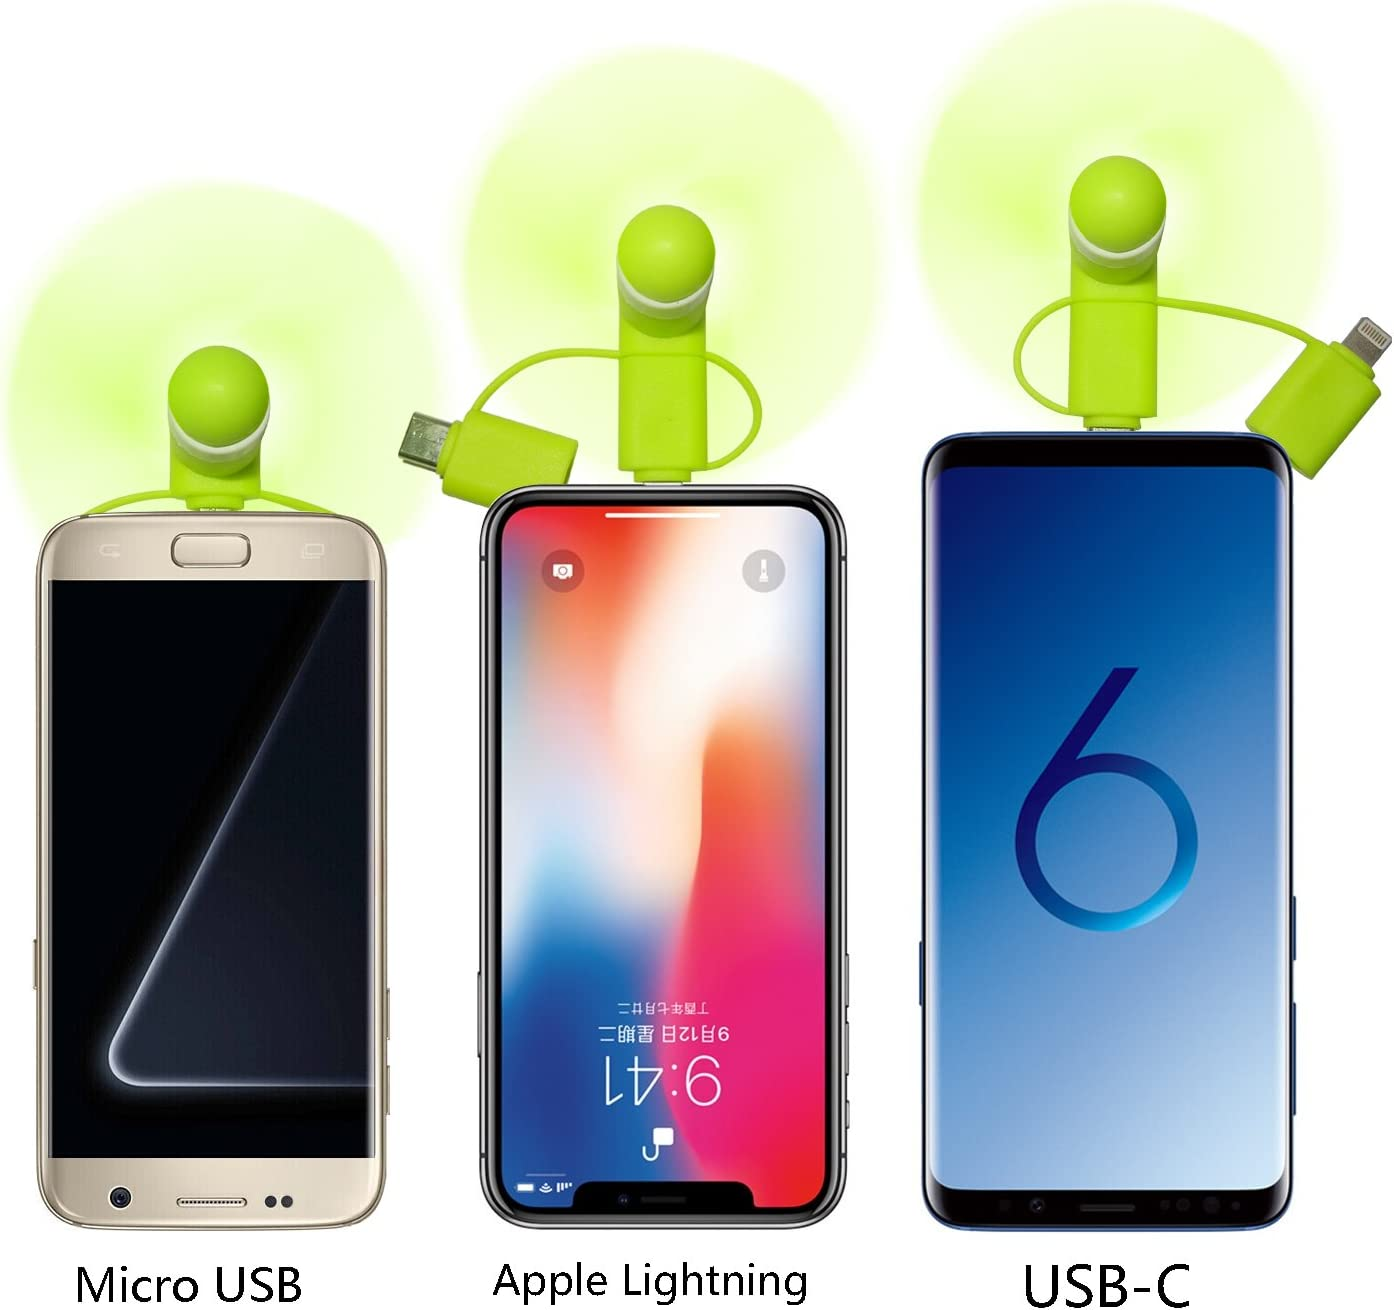 3 Piece HBirdPc Cell Phone Fan 3-in-1 Portable Powerful Mini Phone Fan for iPhone//iPad Android,Samsung Galaxy S8//S9//S10,Huawei,USB C,Type C Pink//Blue//Green